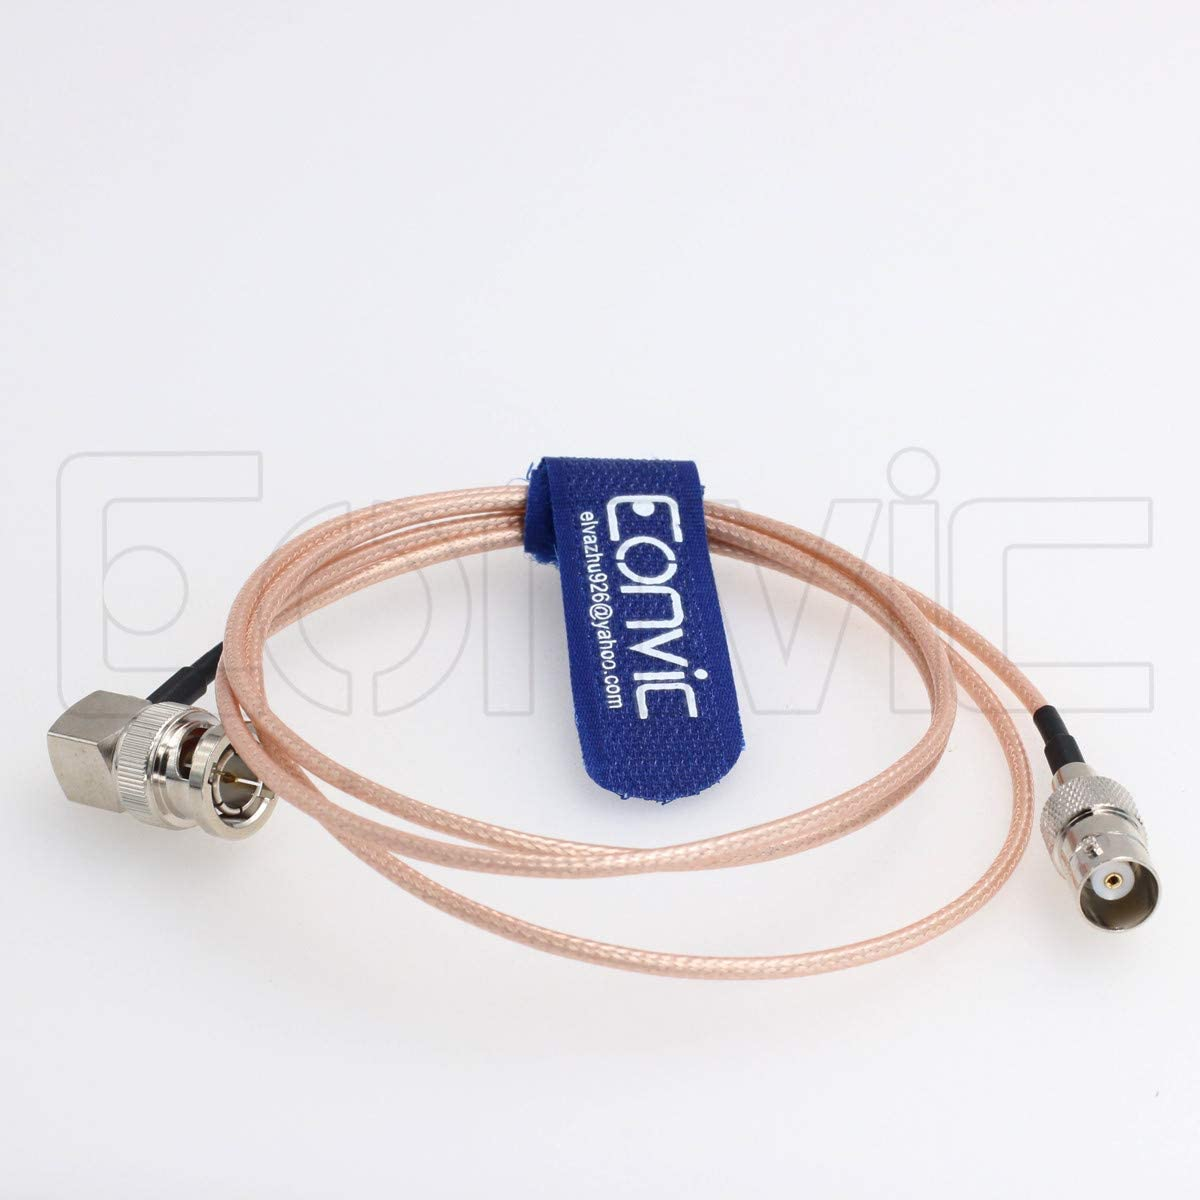 Eonvic Ultrathin Flexible Right Male to Straight Female 75 Ohm RG179 BNC Cable 1M